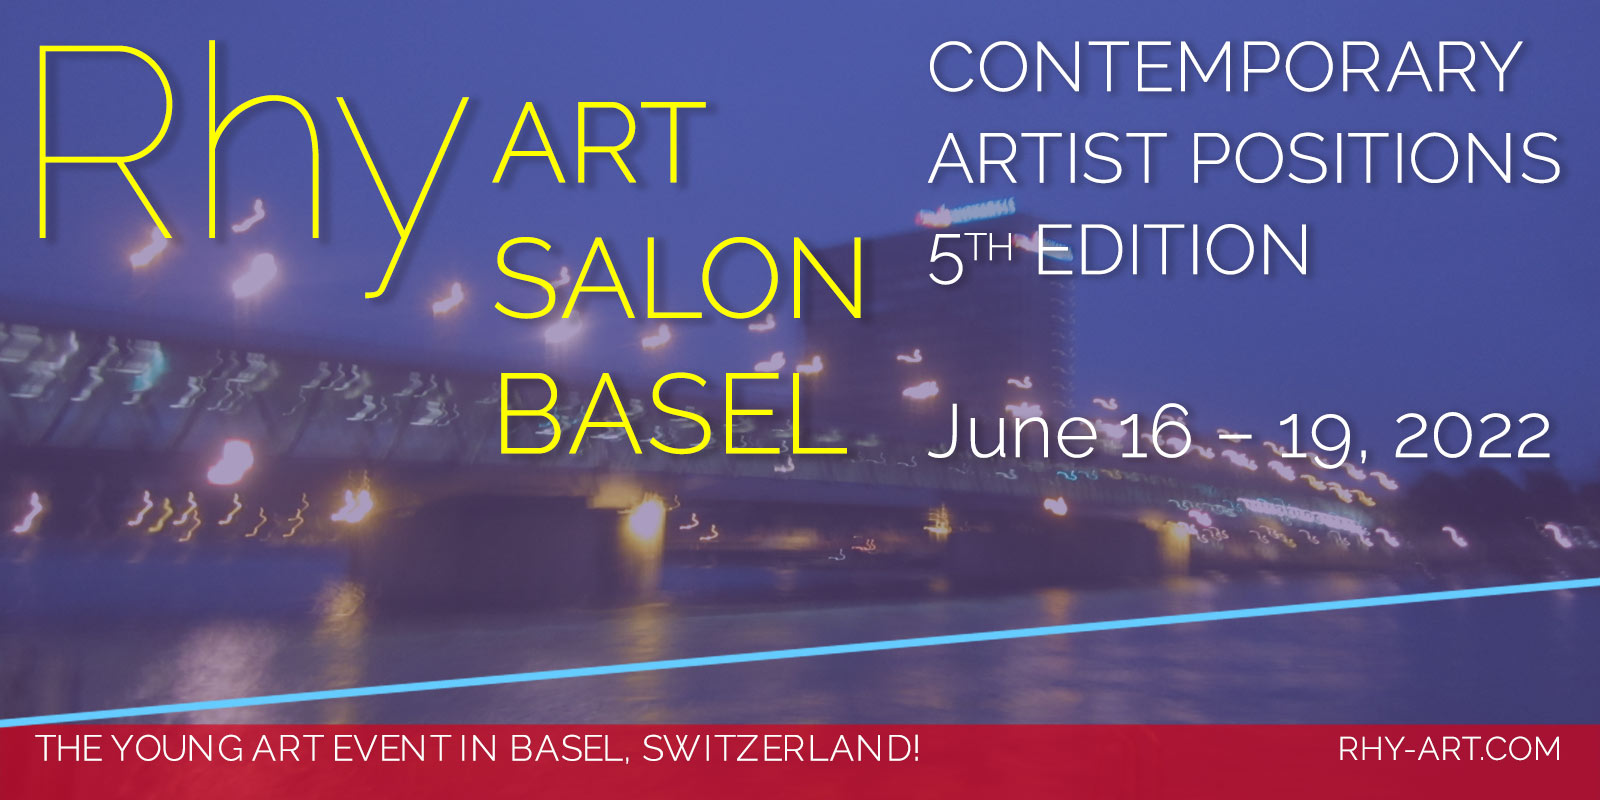 RHY ART FAIR BASEL - The 4th Contemporary Art Salon in June 2018 during Art Basel Week